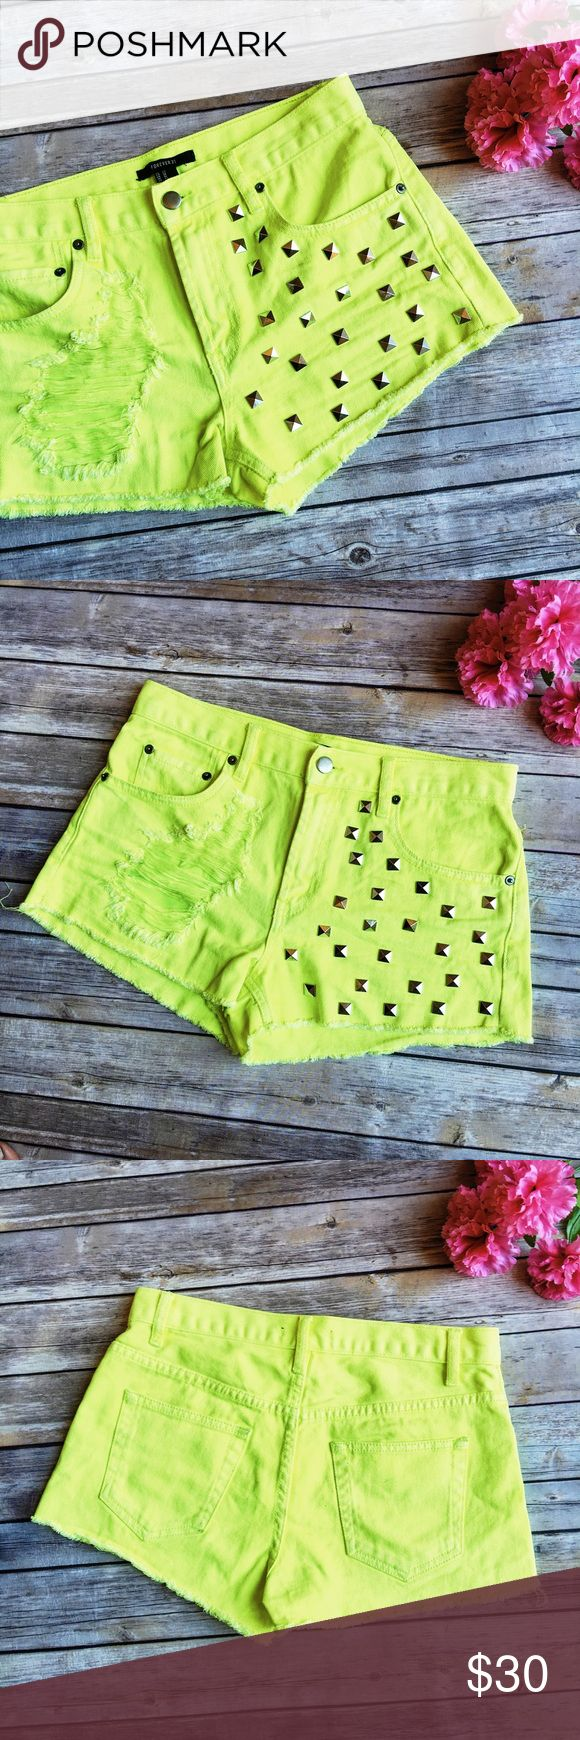 Forever 21 Neon Yellow Studded Cutoff Jean Shorts ★ NWOT, in perfect condition!  ★ These incredible neon yellow cutoff shorts from Forever 21 are a show stopping piece! Perfect for summer and festival season!  ★ 100% Cotton. ★ NO TRADES!   ★ NO MODELING!  ★ YES REASONABLE OFFERS! ✅ ★ Measurements available by request and as soon as possible.  Forever 21 Shorts